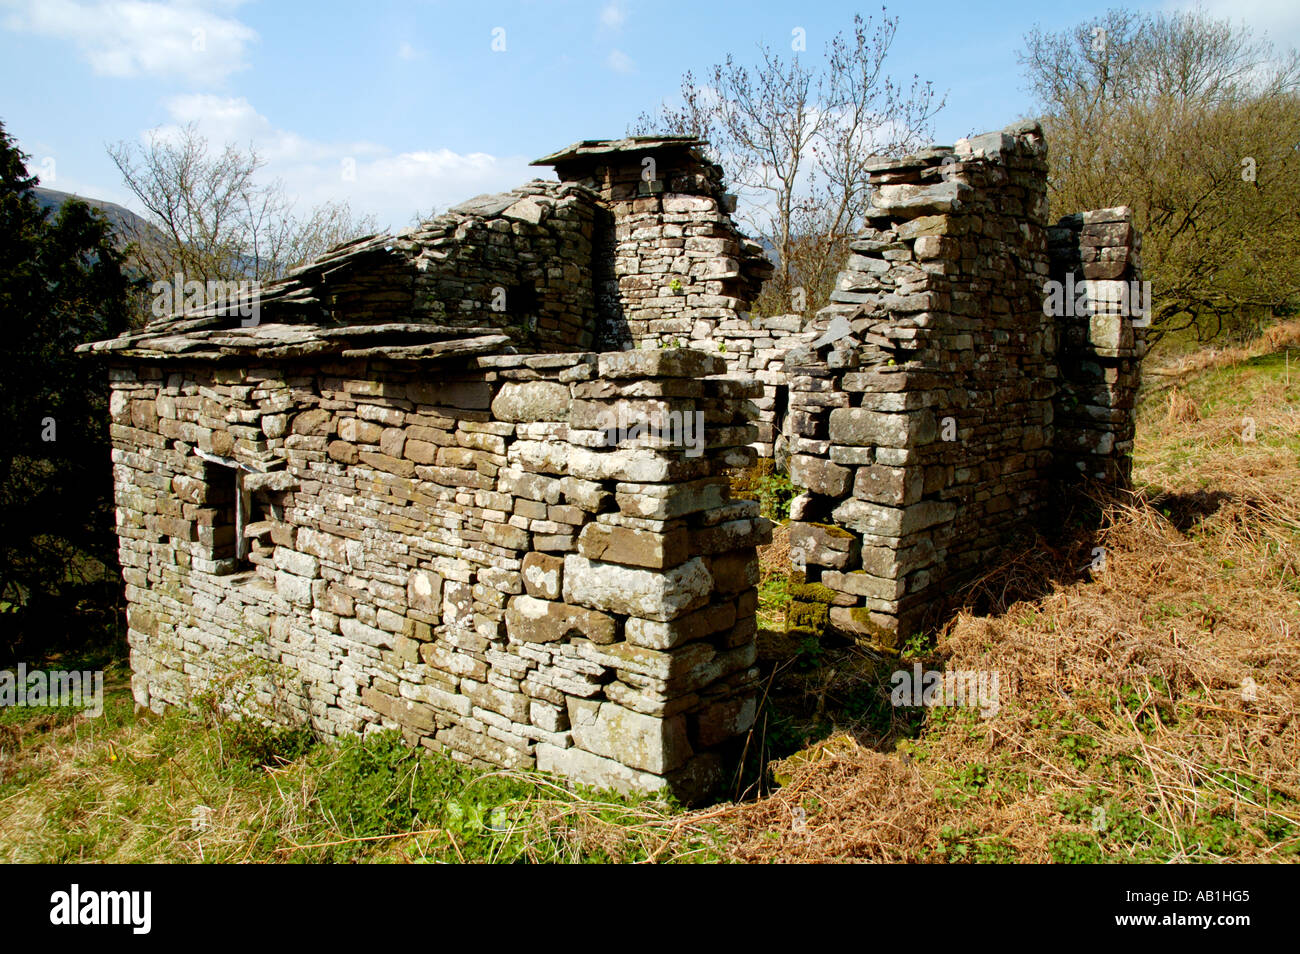 Derelict stone built farmstead on walking footpath in the Vale of Ewyas near Llanthony Priory Monmouthshire South East Wales UK - Stock Image